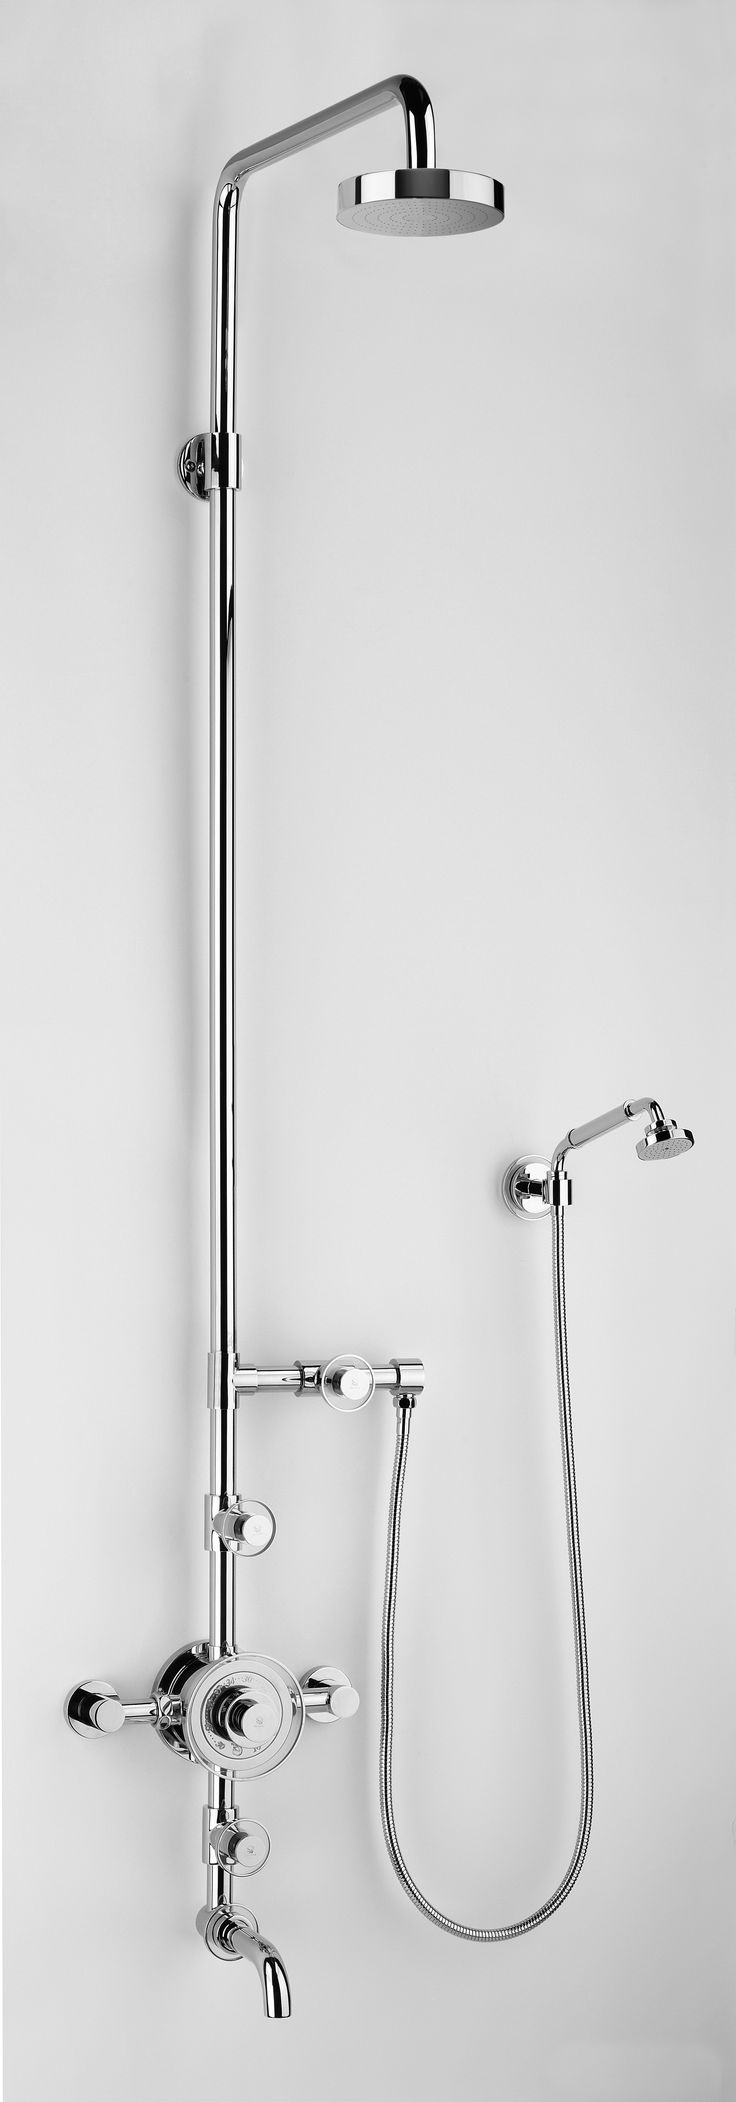 22 best volevatch grand hotel images on pinterest bath mixer volevatch grand hotel exposed wall mounted thermostatic bath and shower set with hand shower and bath